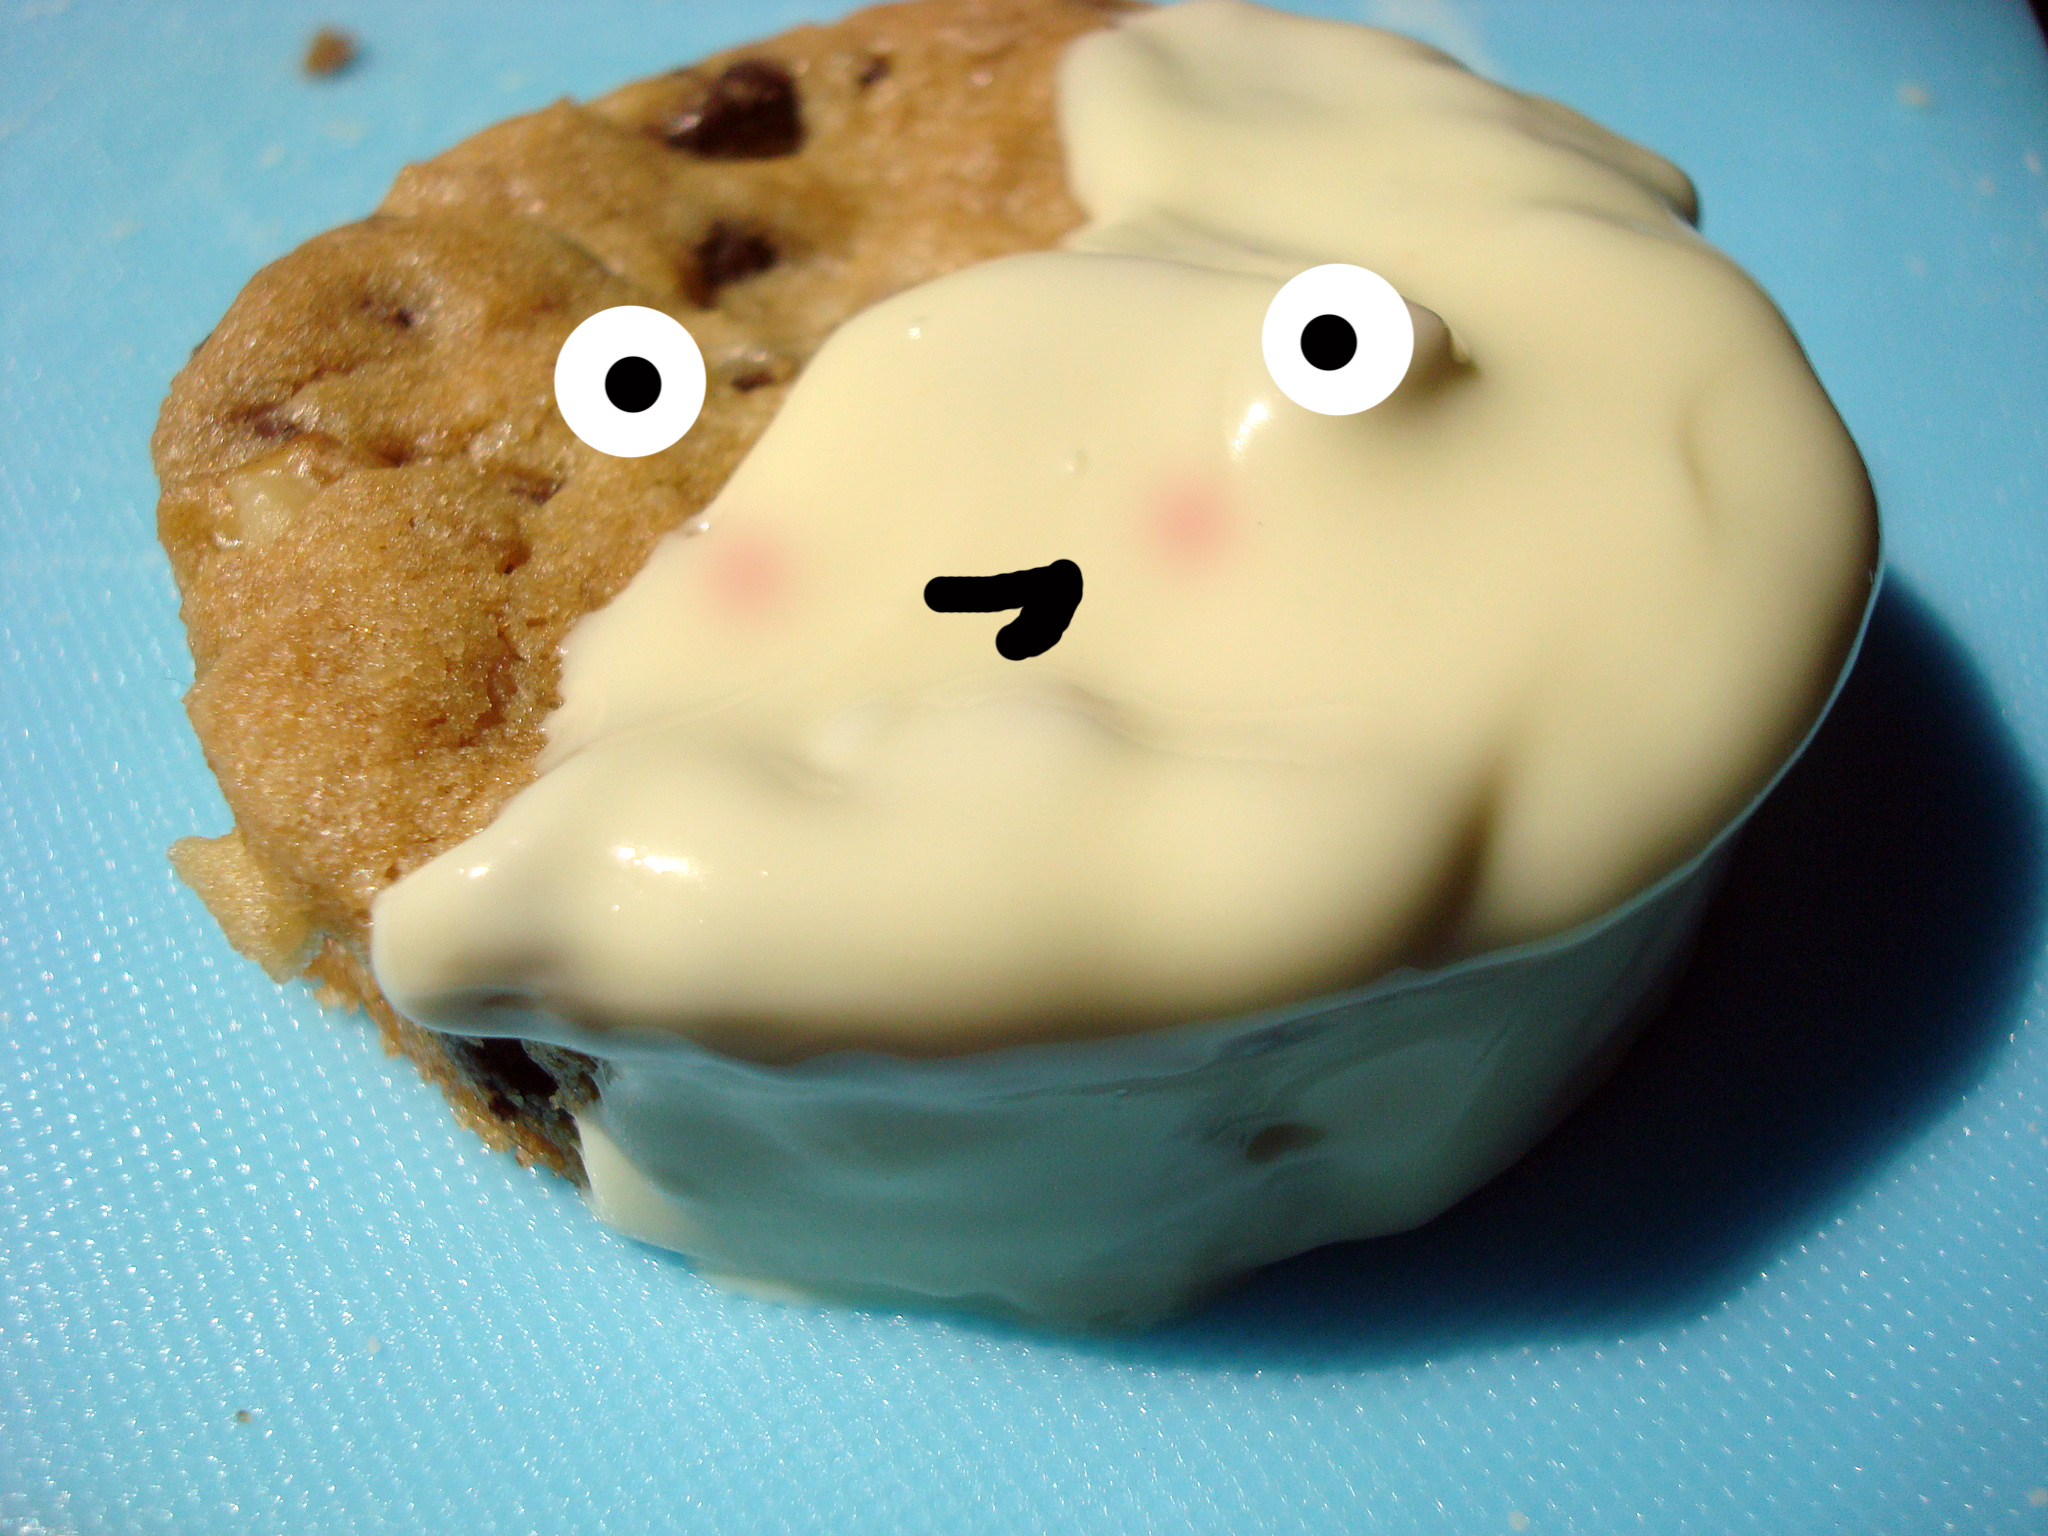 Chocolate Chip Cookie Covered in White Chocolate with Cartoon Face